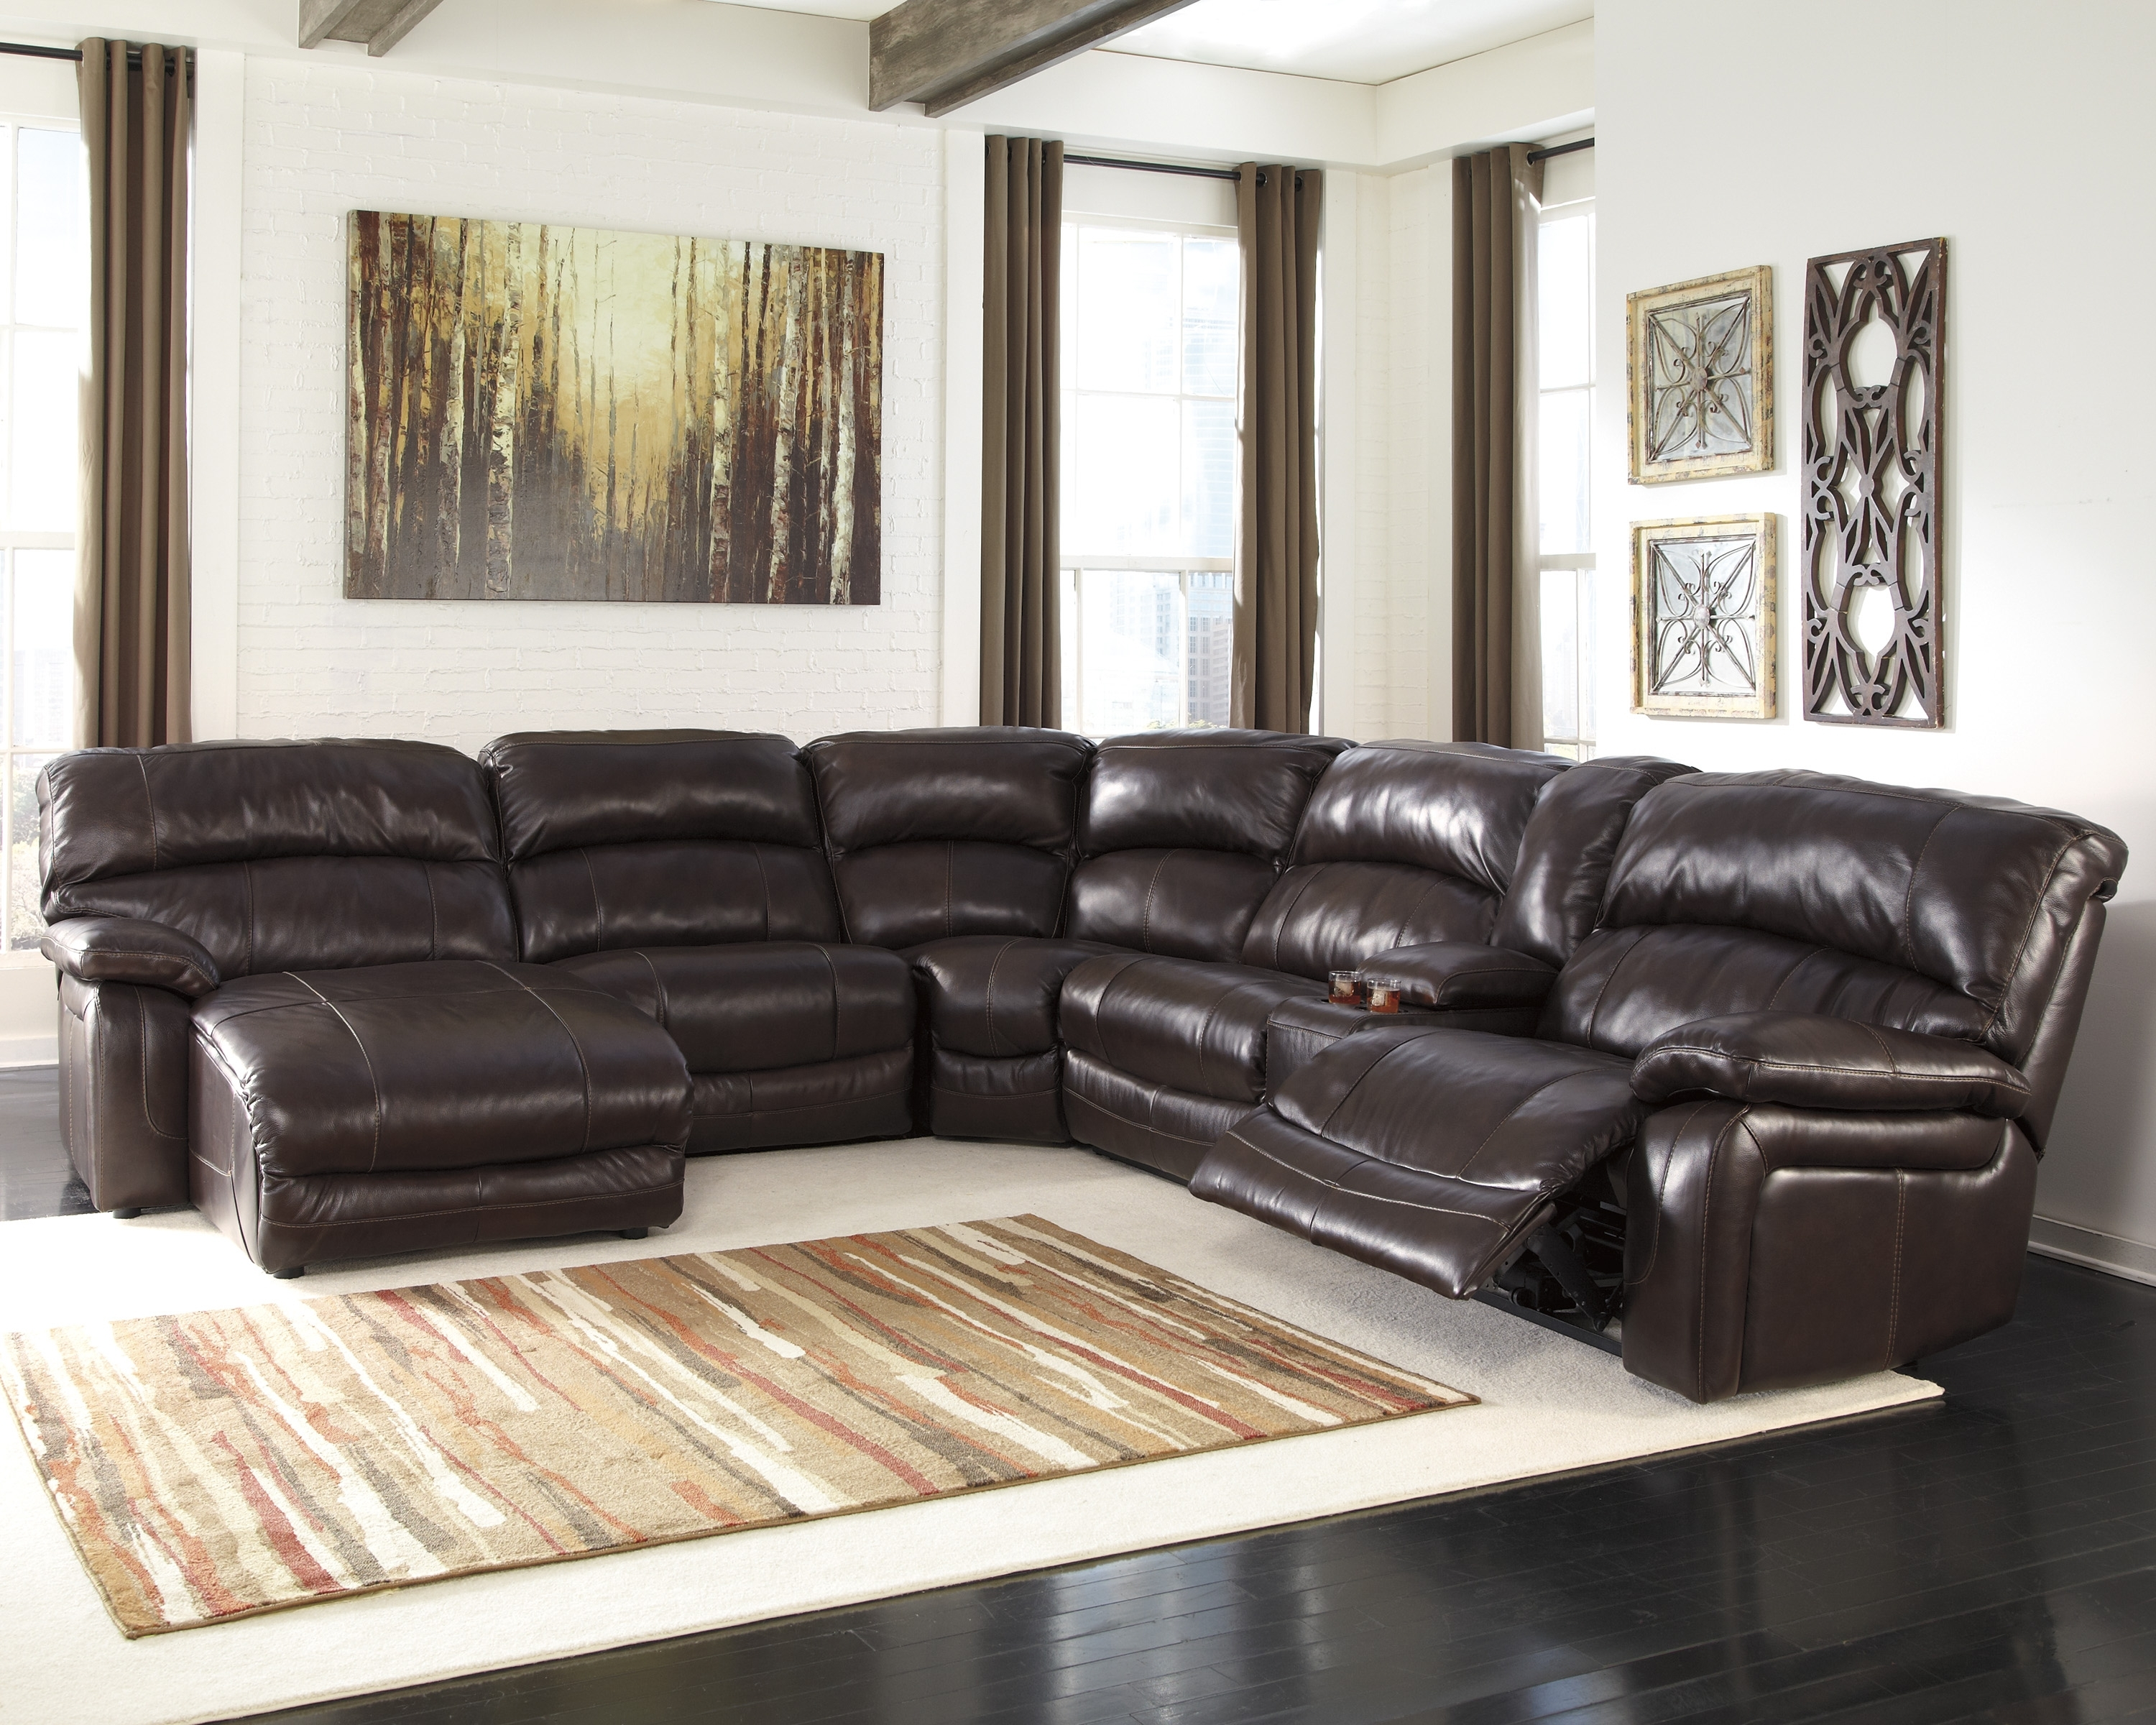 Leather Sectional Sofas With Recliners And Cup Holders Sectional For 2018 Black Leather Sectionals With Chaise (View 12 of 15)